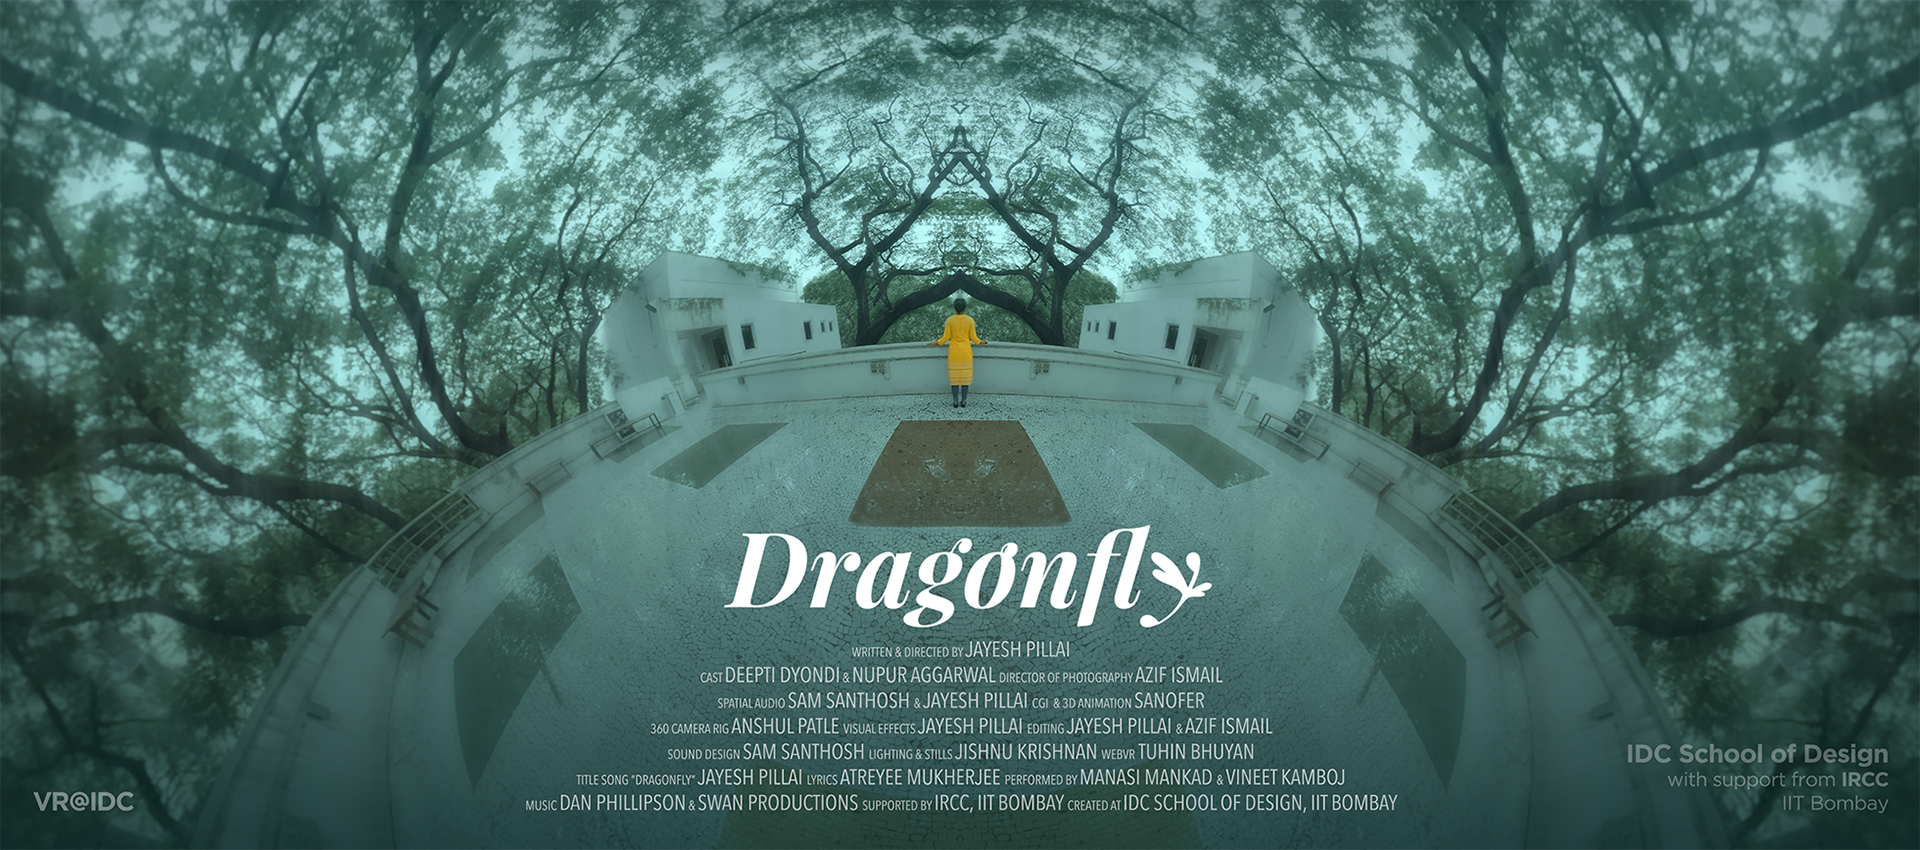 dragonfly_poster